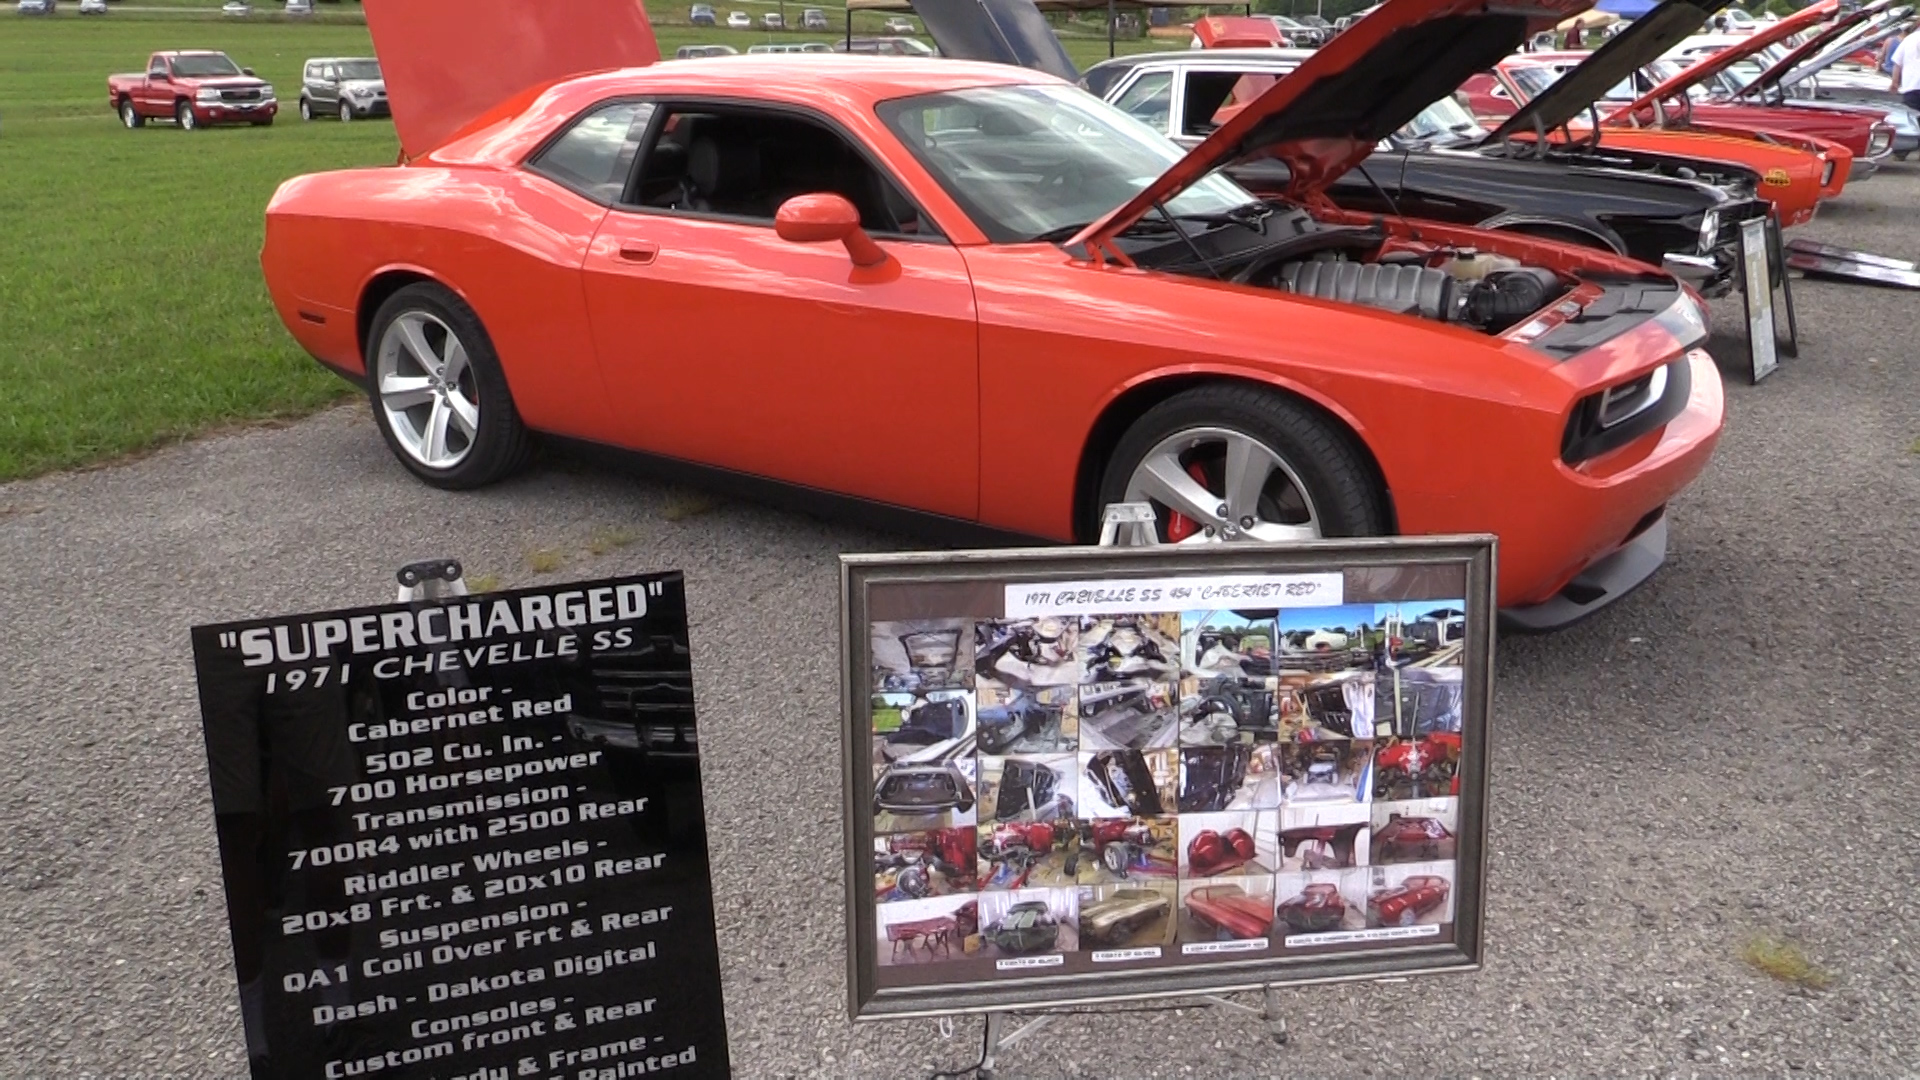 The fifth annual Marketville car show